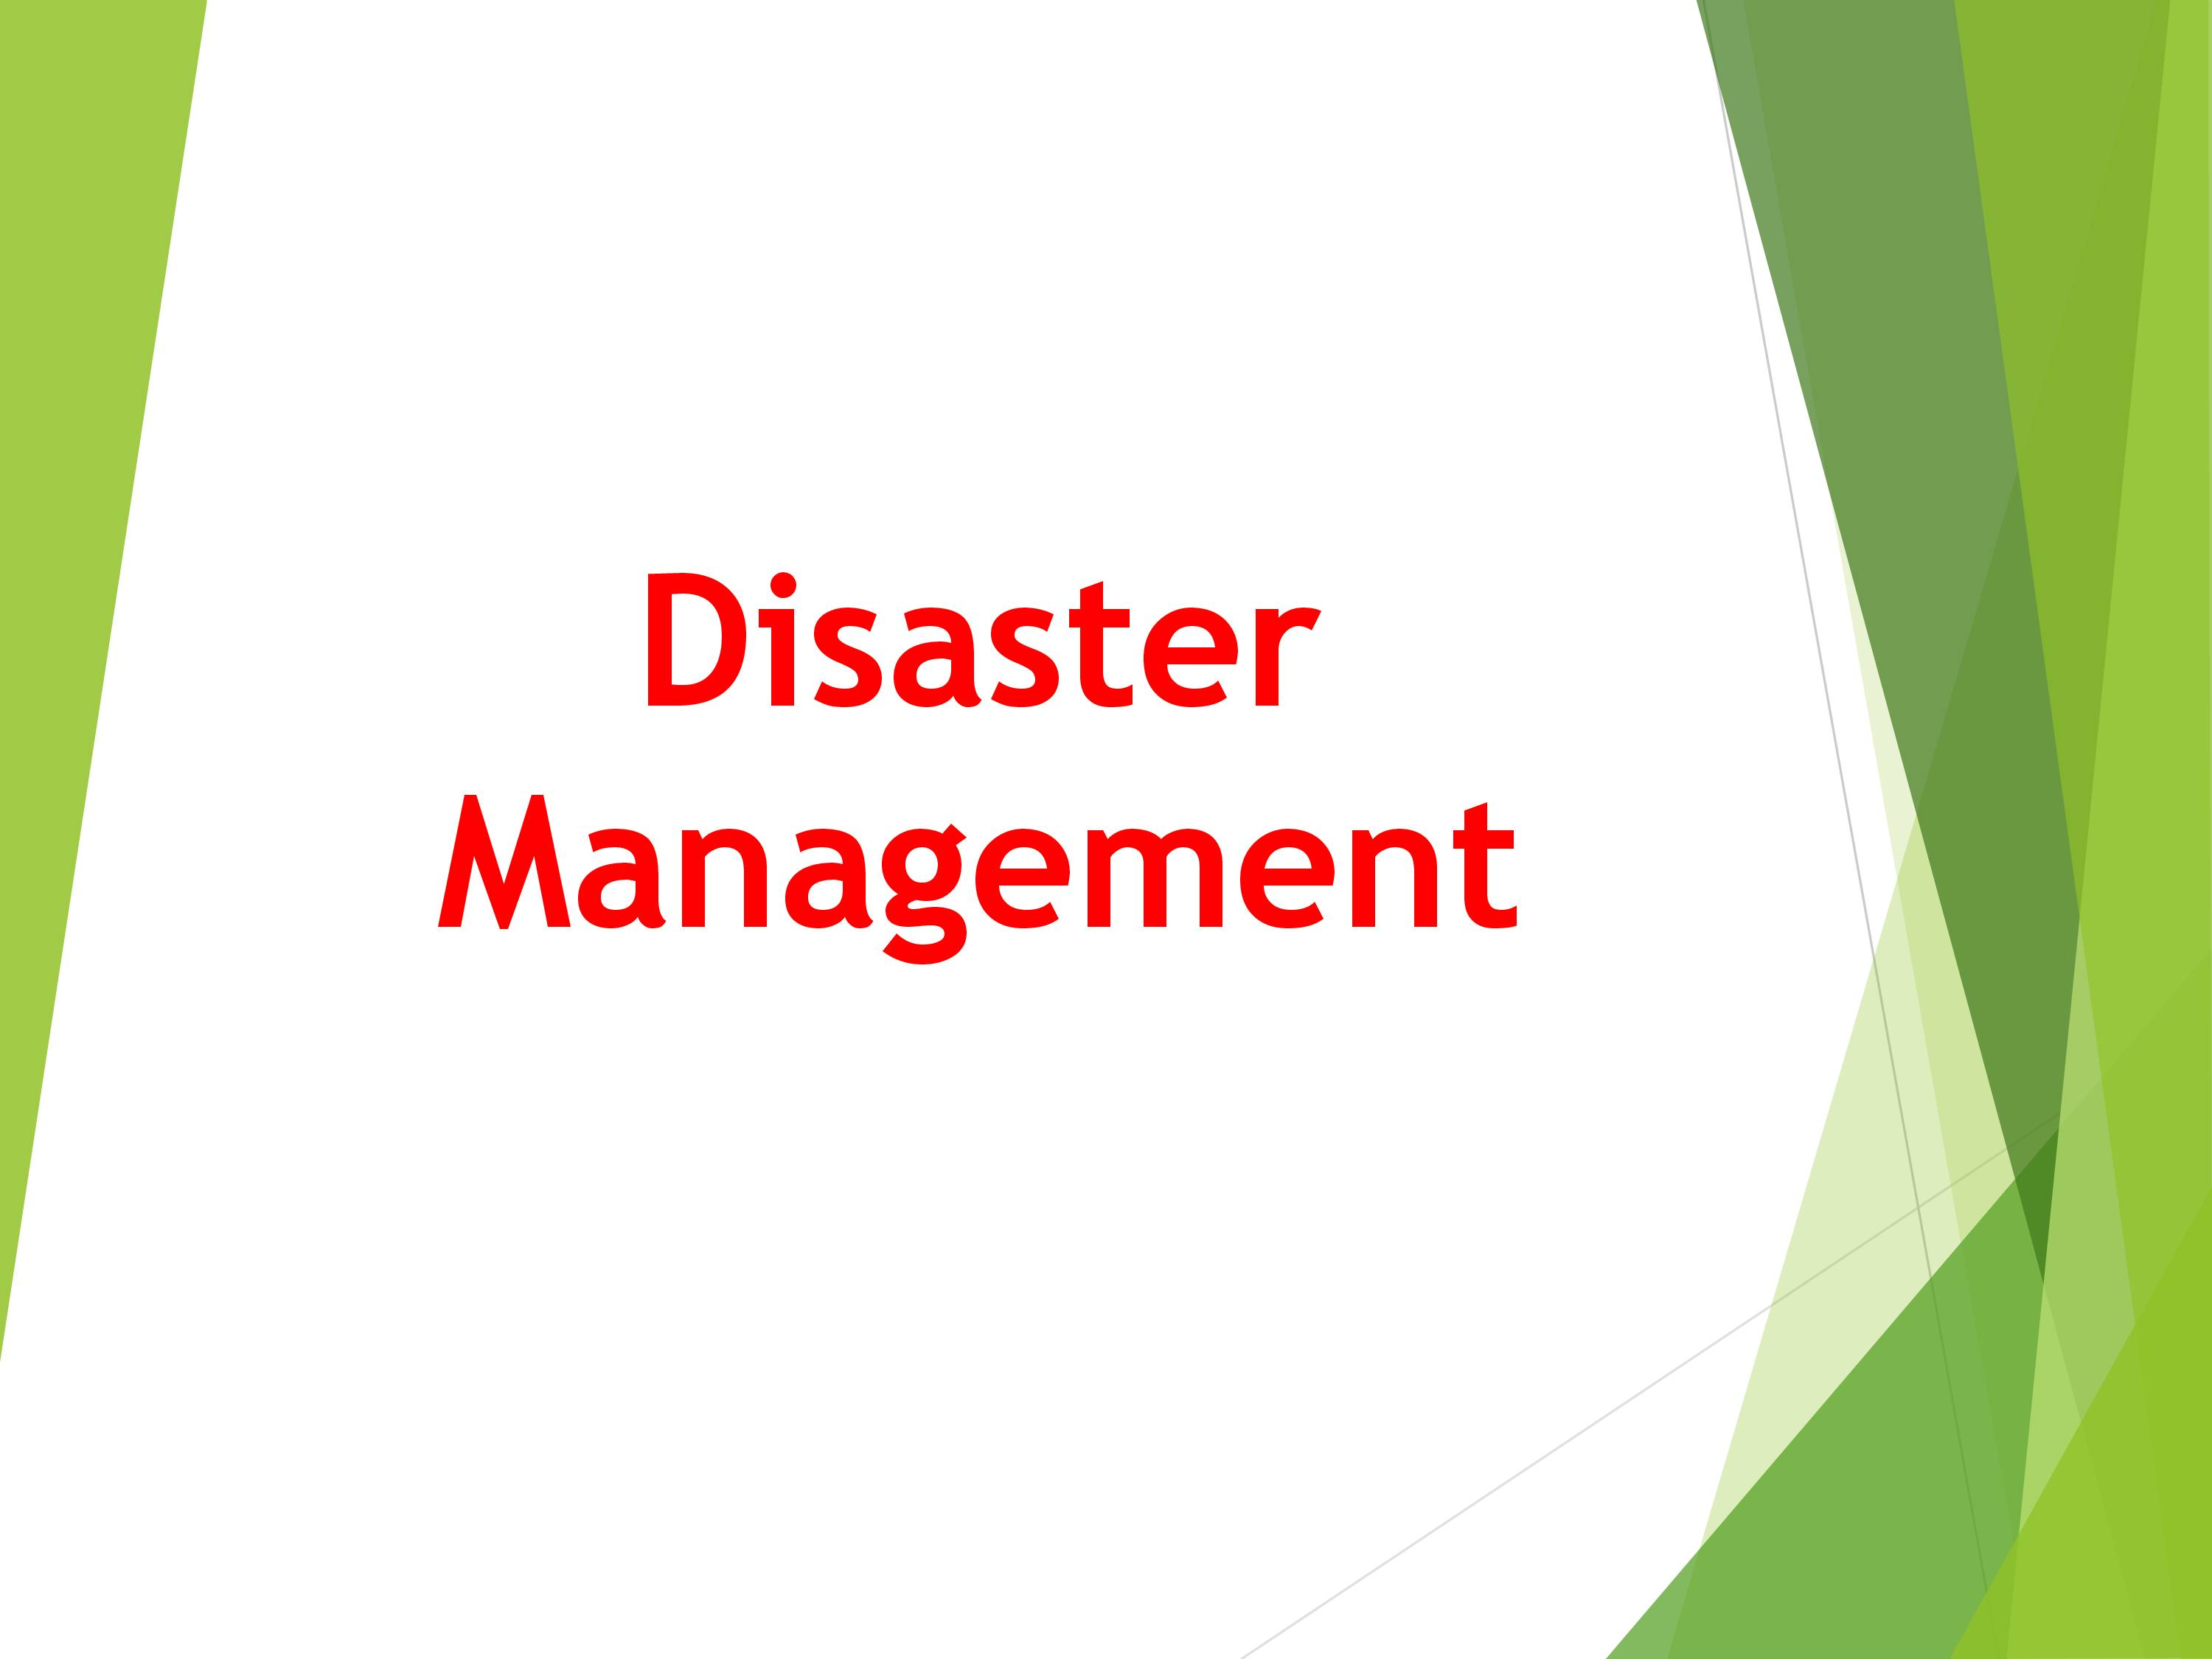 R18 III YEAR Disaster Management